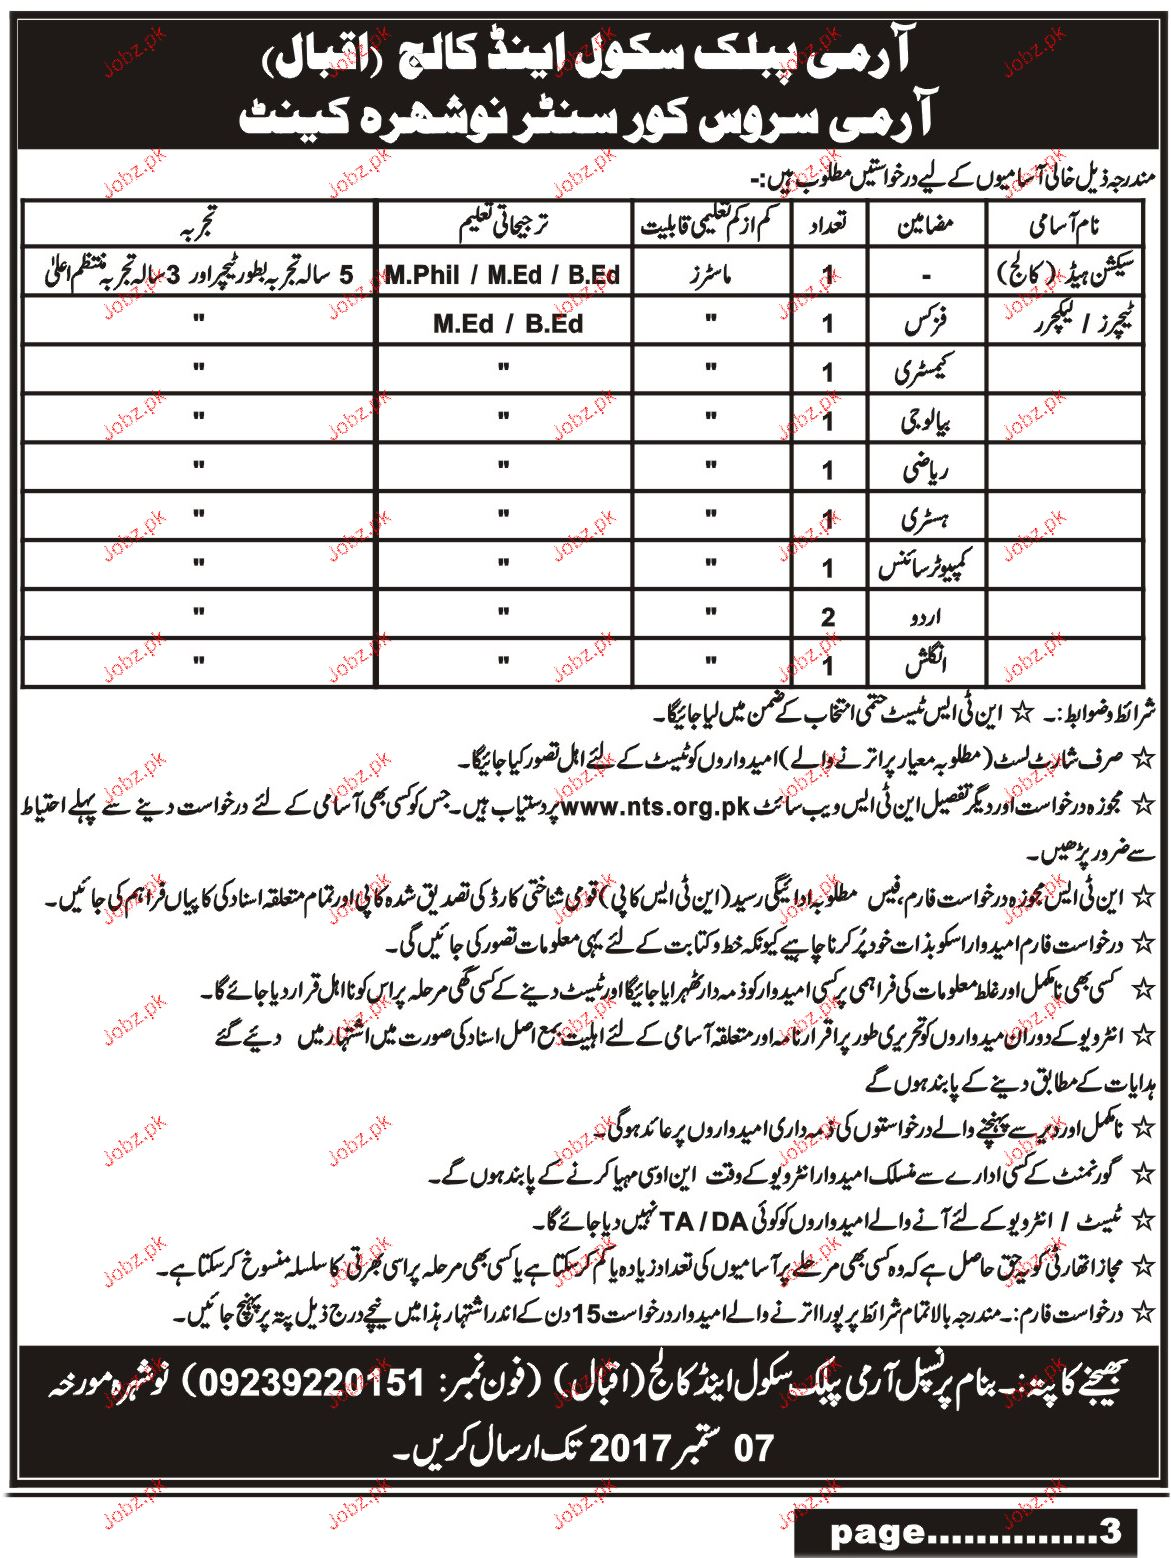 Army Public School and College APS NTS Jobs